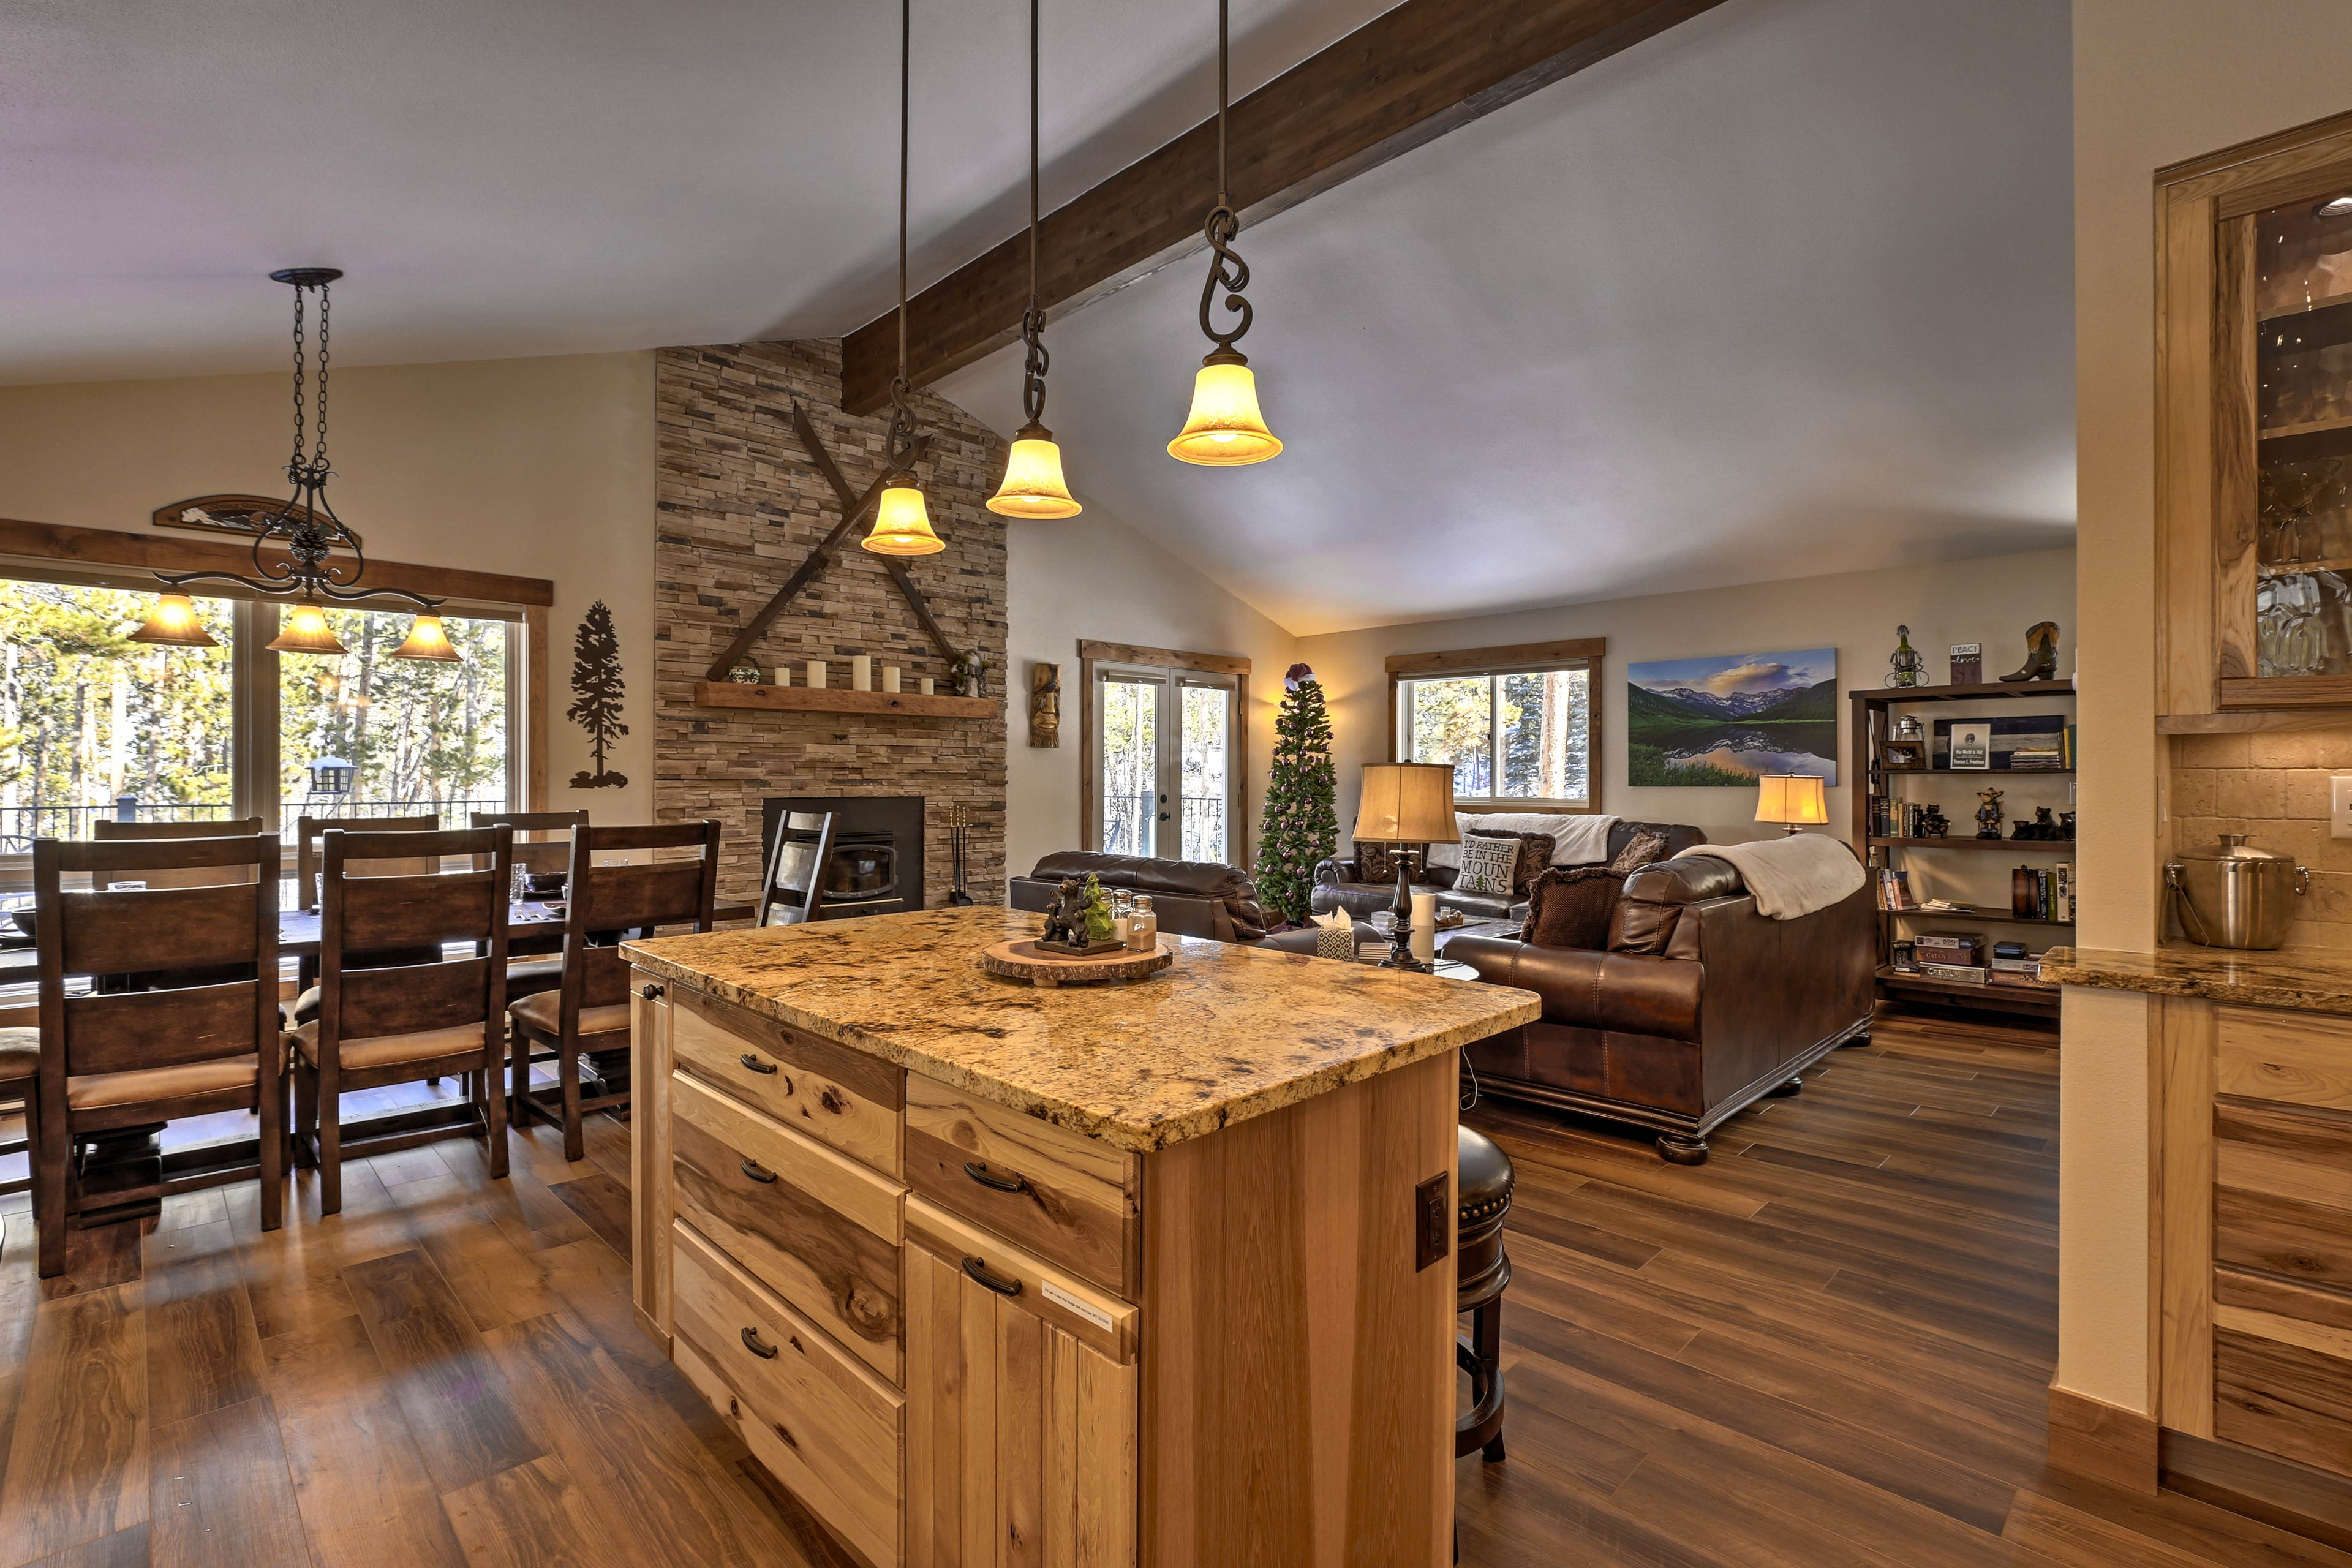 The open floor plan allows each room to work seamlessly together.